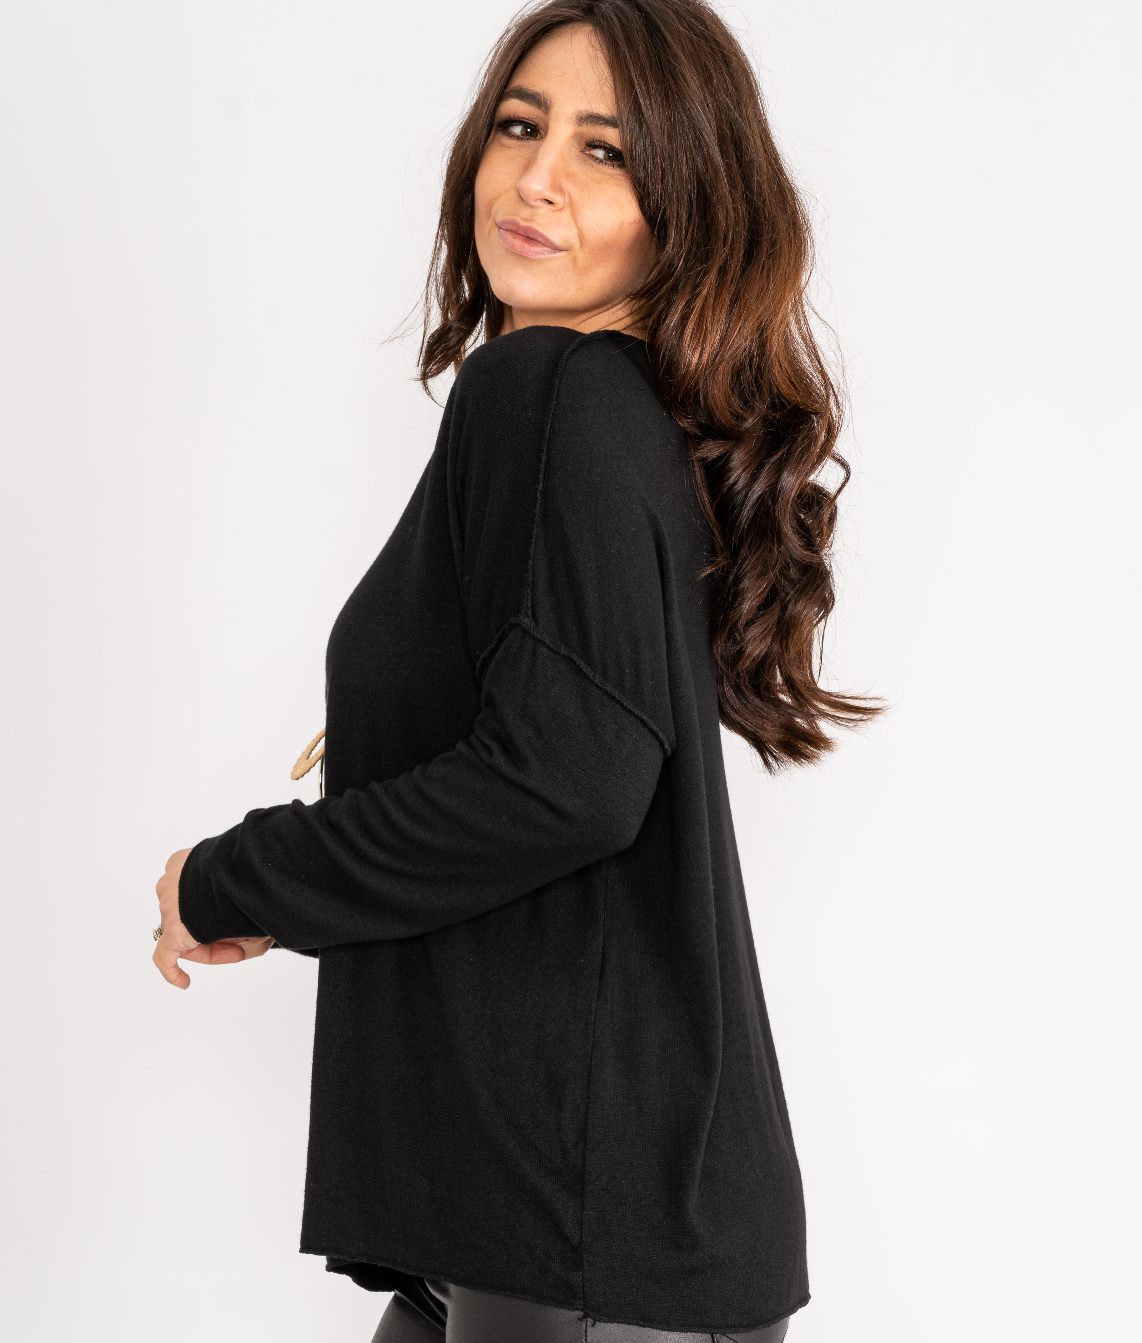 Long sleeve top with necklace Lucy Sparks